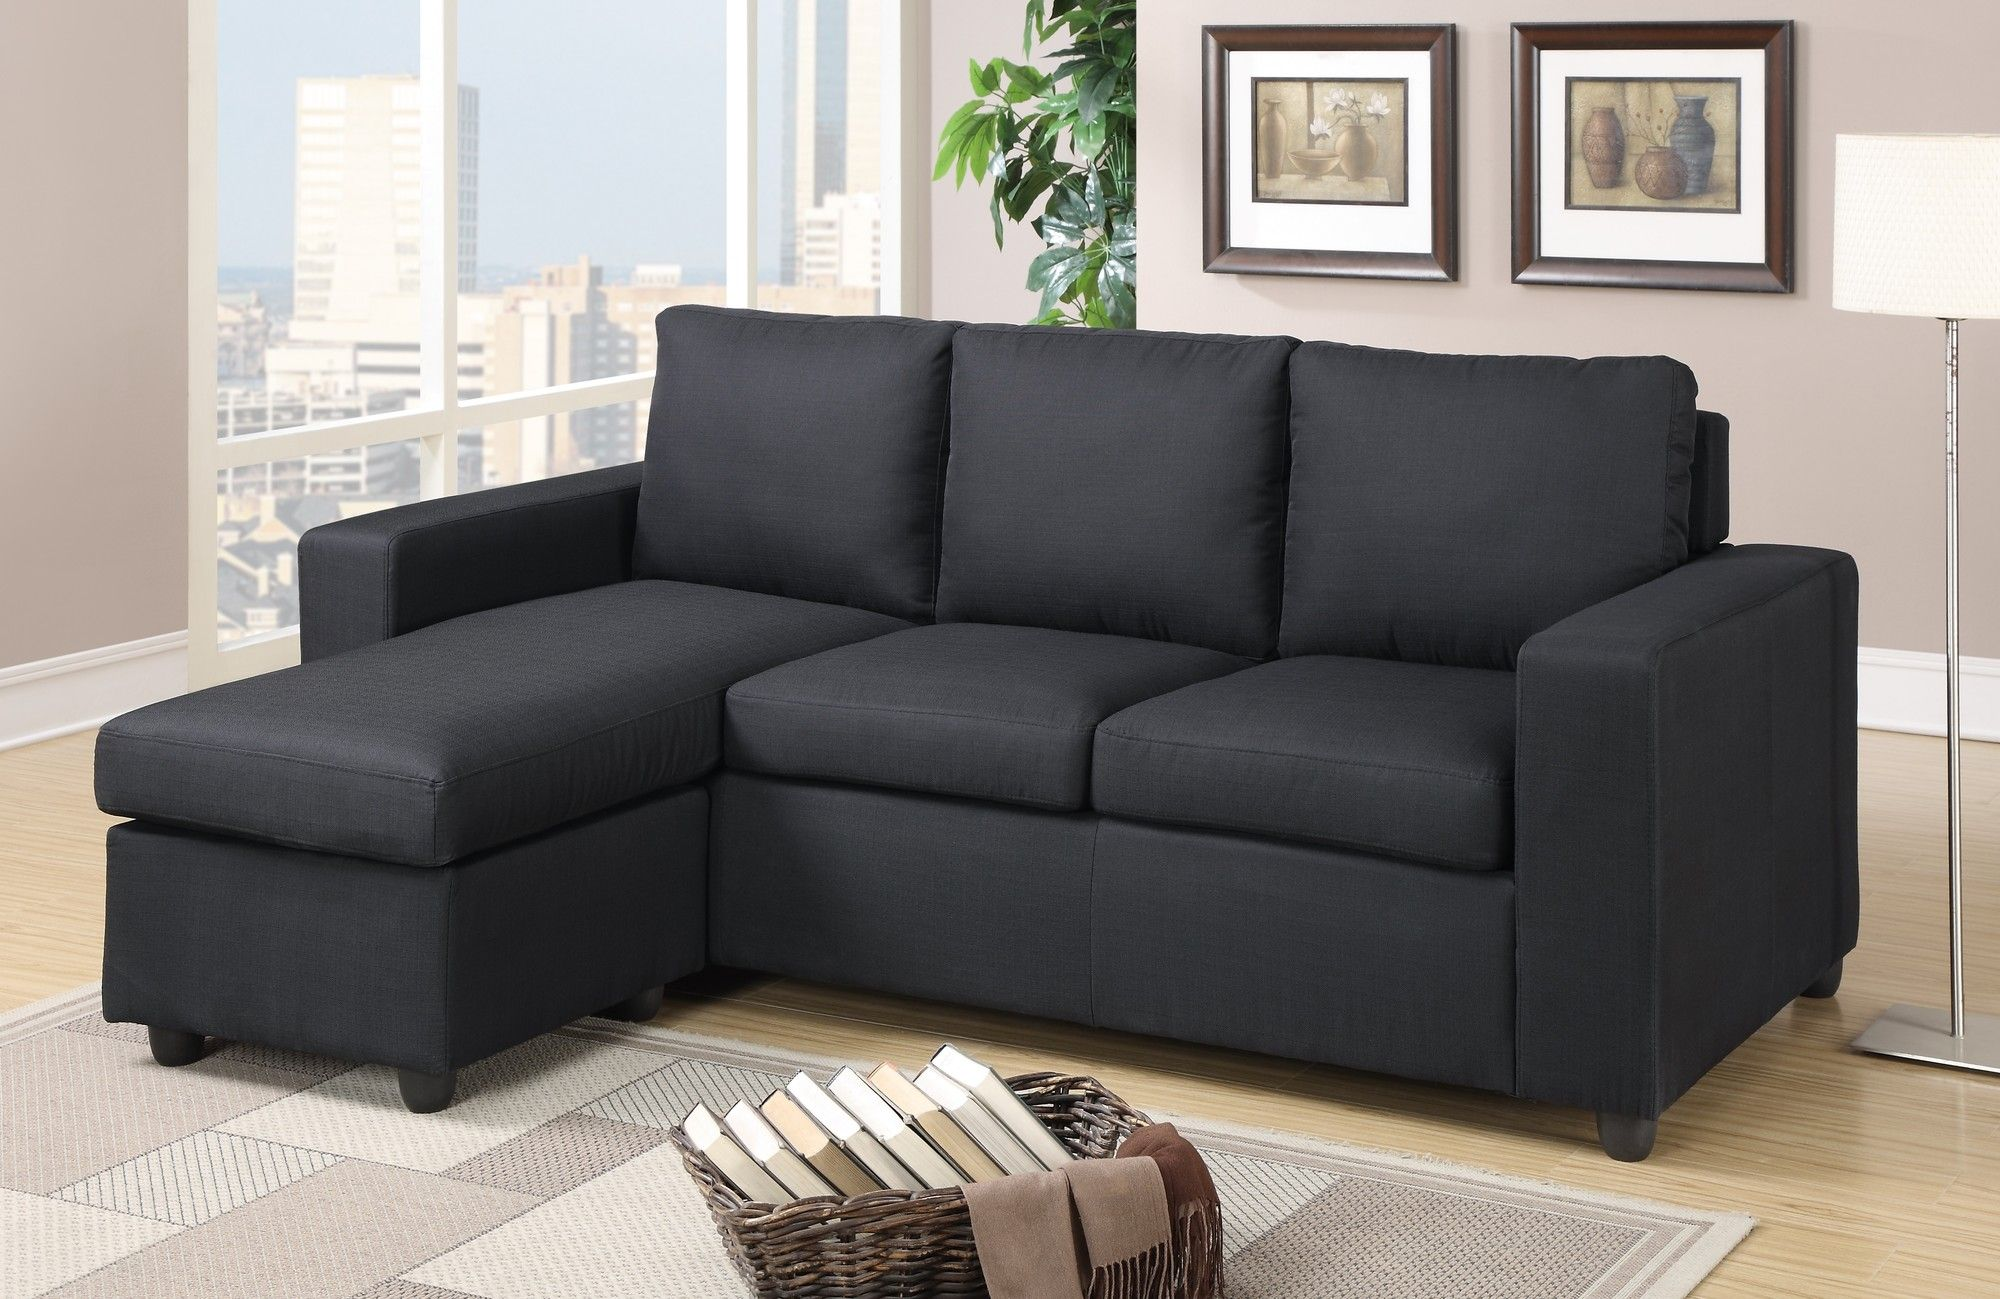 Rossa Reversible Chaise Sectional Fabric Sectional Sofas Sectional Sofa Sale Sectional Sofa Couch